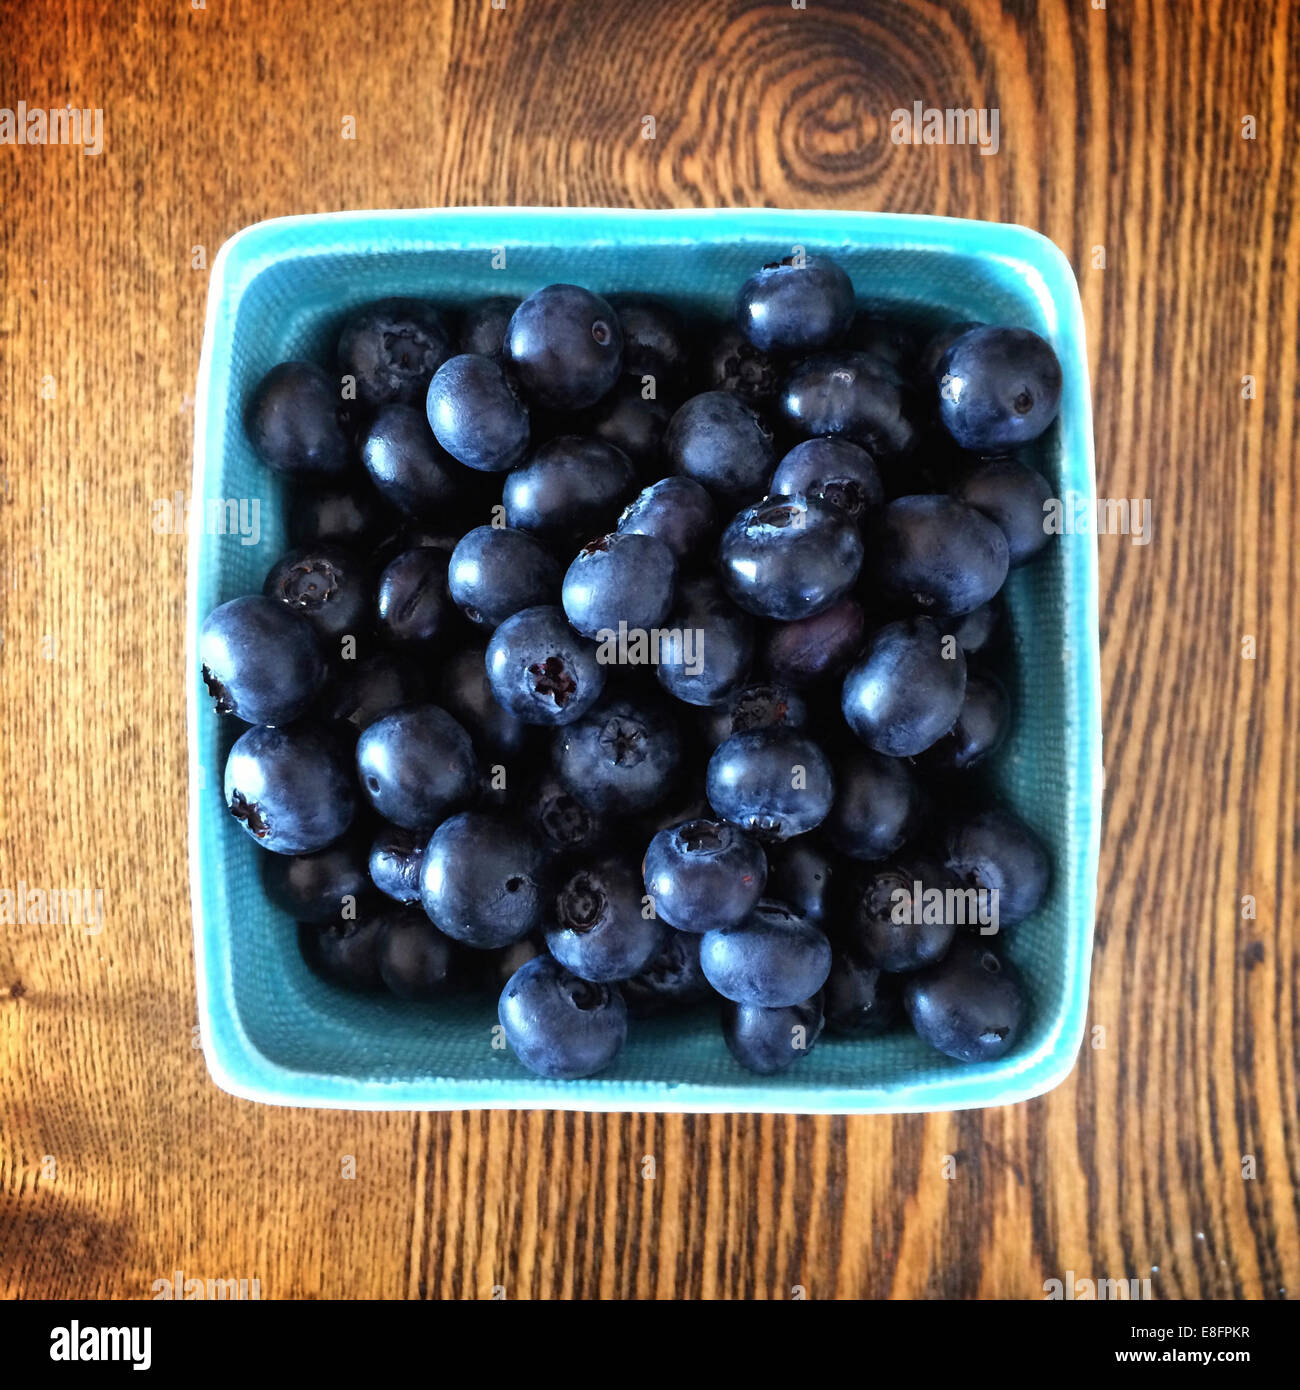 Overhead view of Box of blueberries - Stock Image